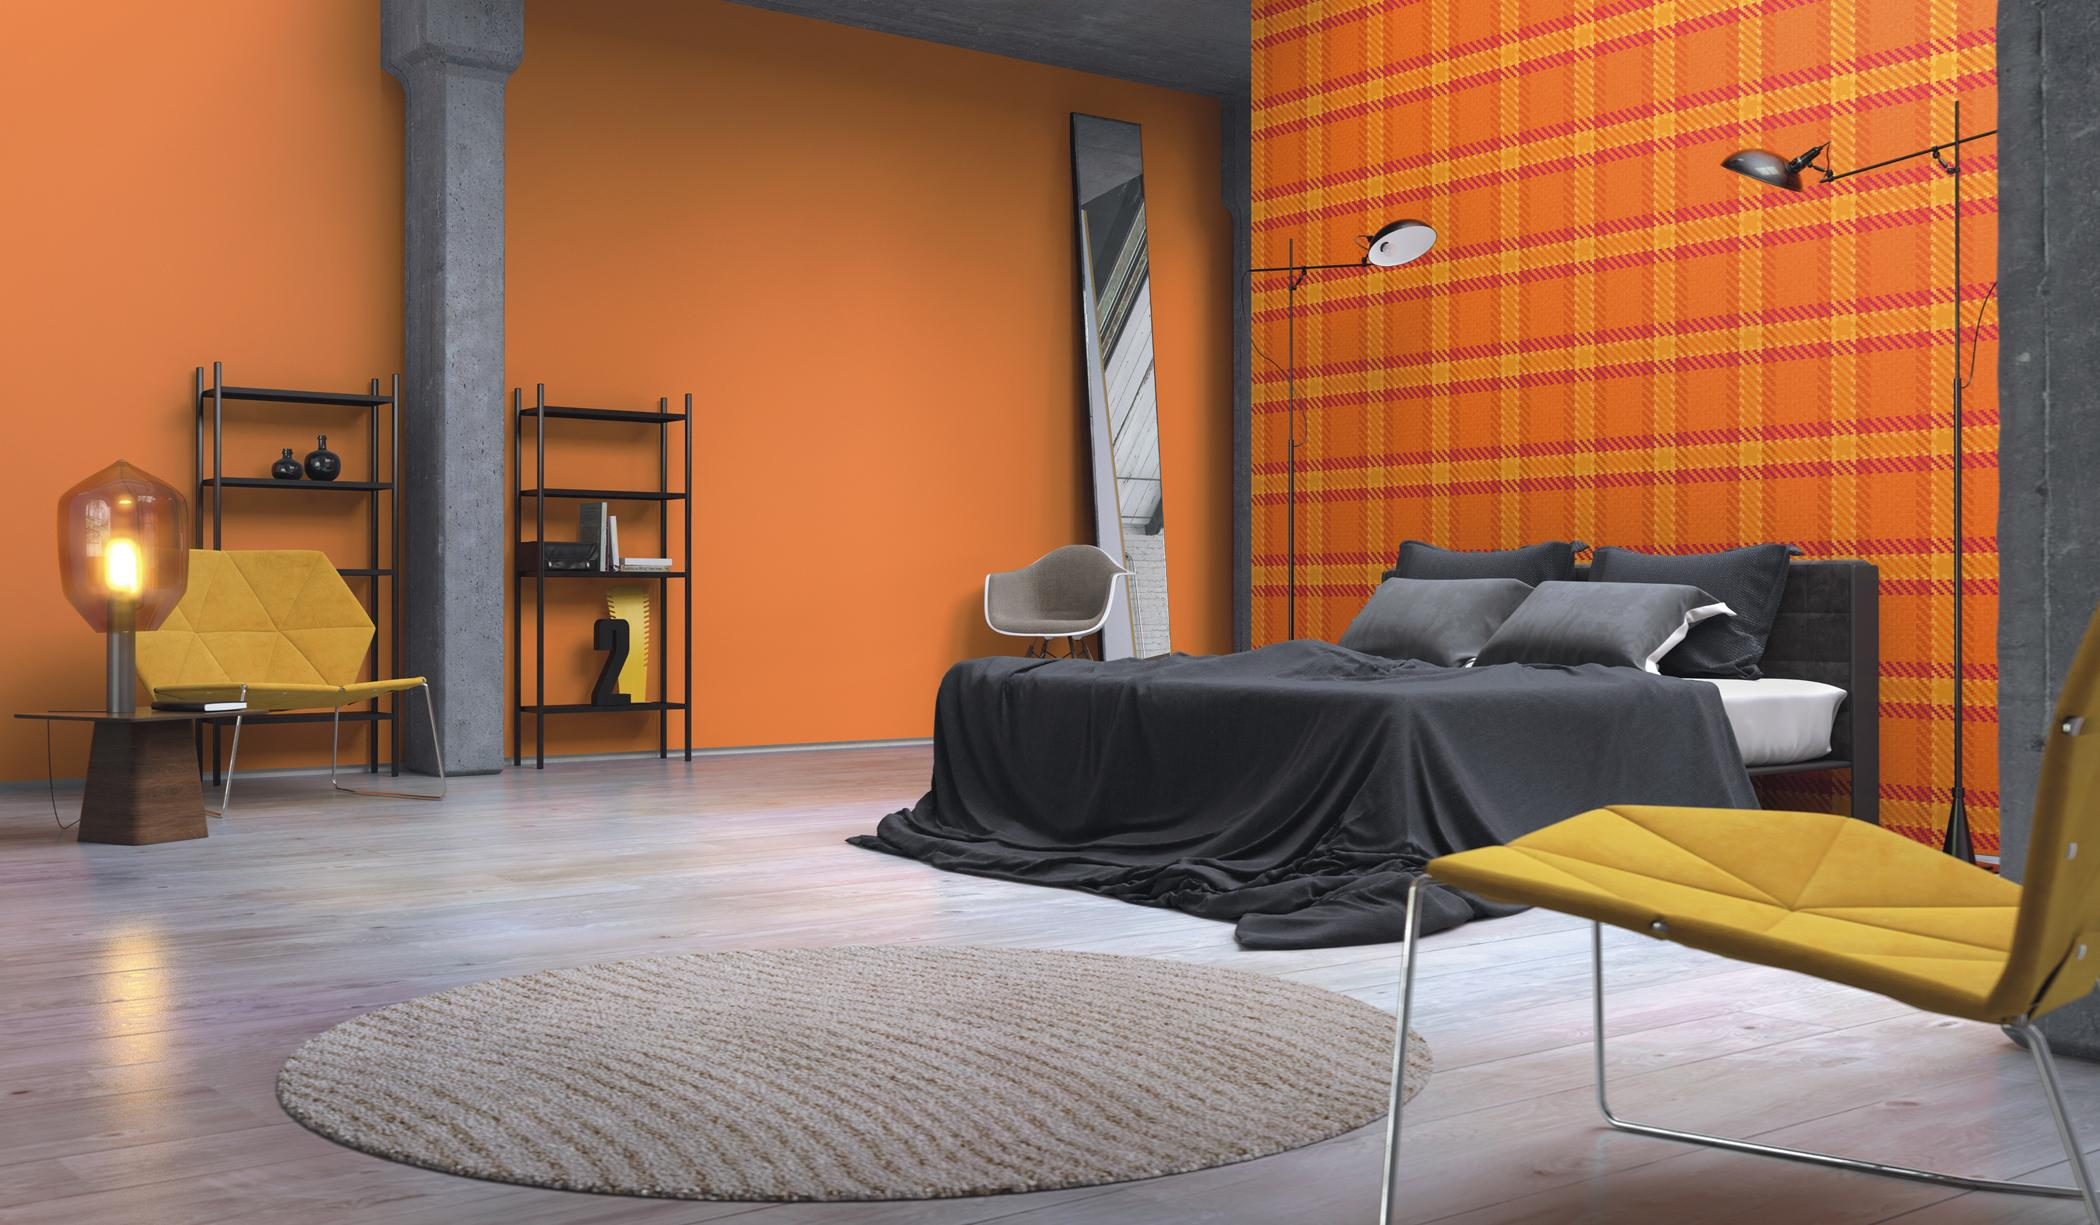 orangefarbene tapete mit karomuster wandgestaltung. Black Bedroom Furniture Sets. Home Design Ideas